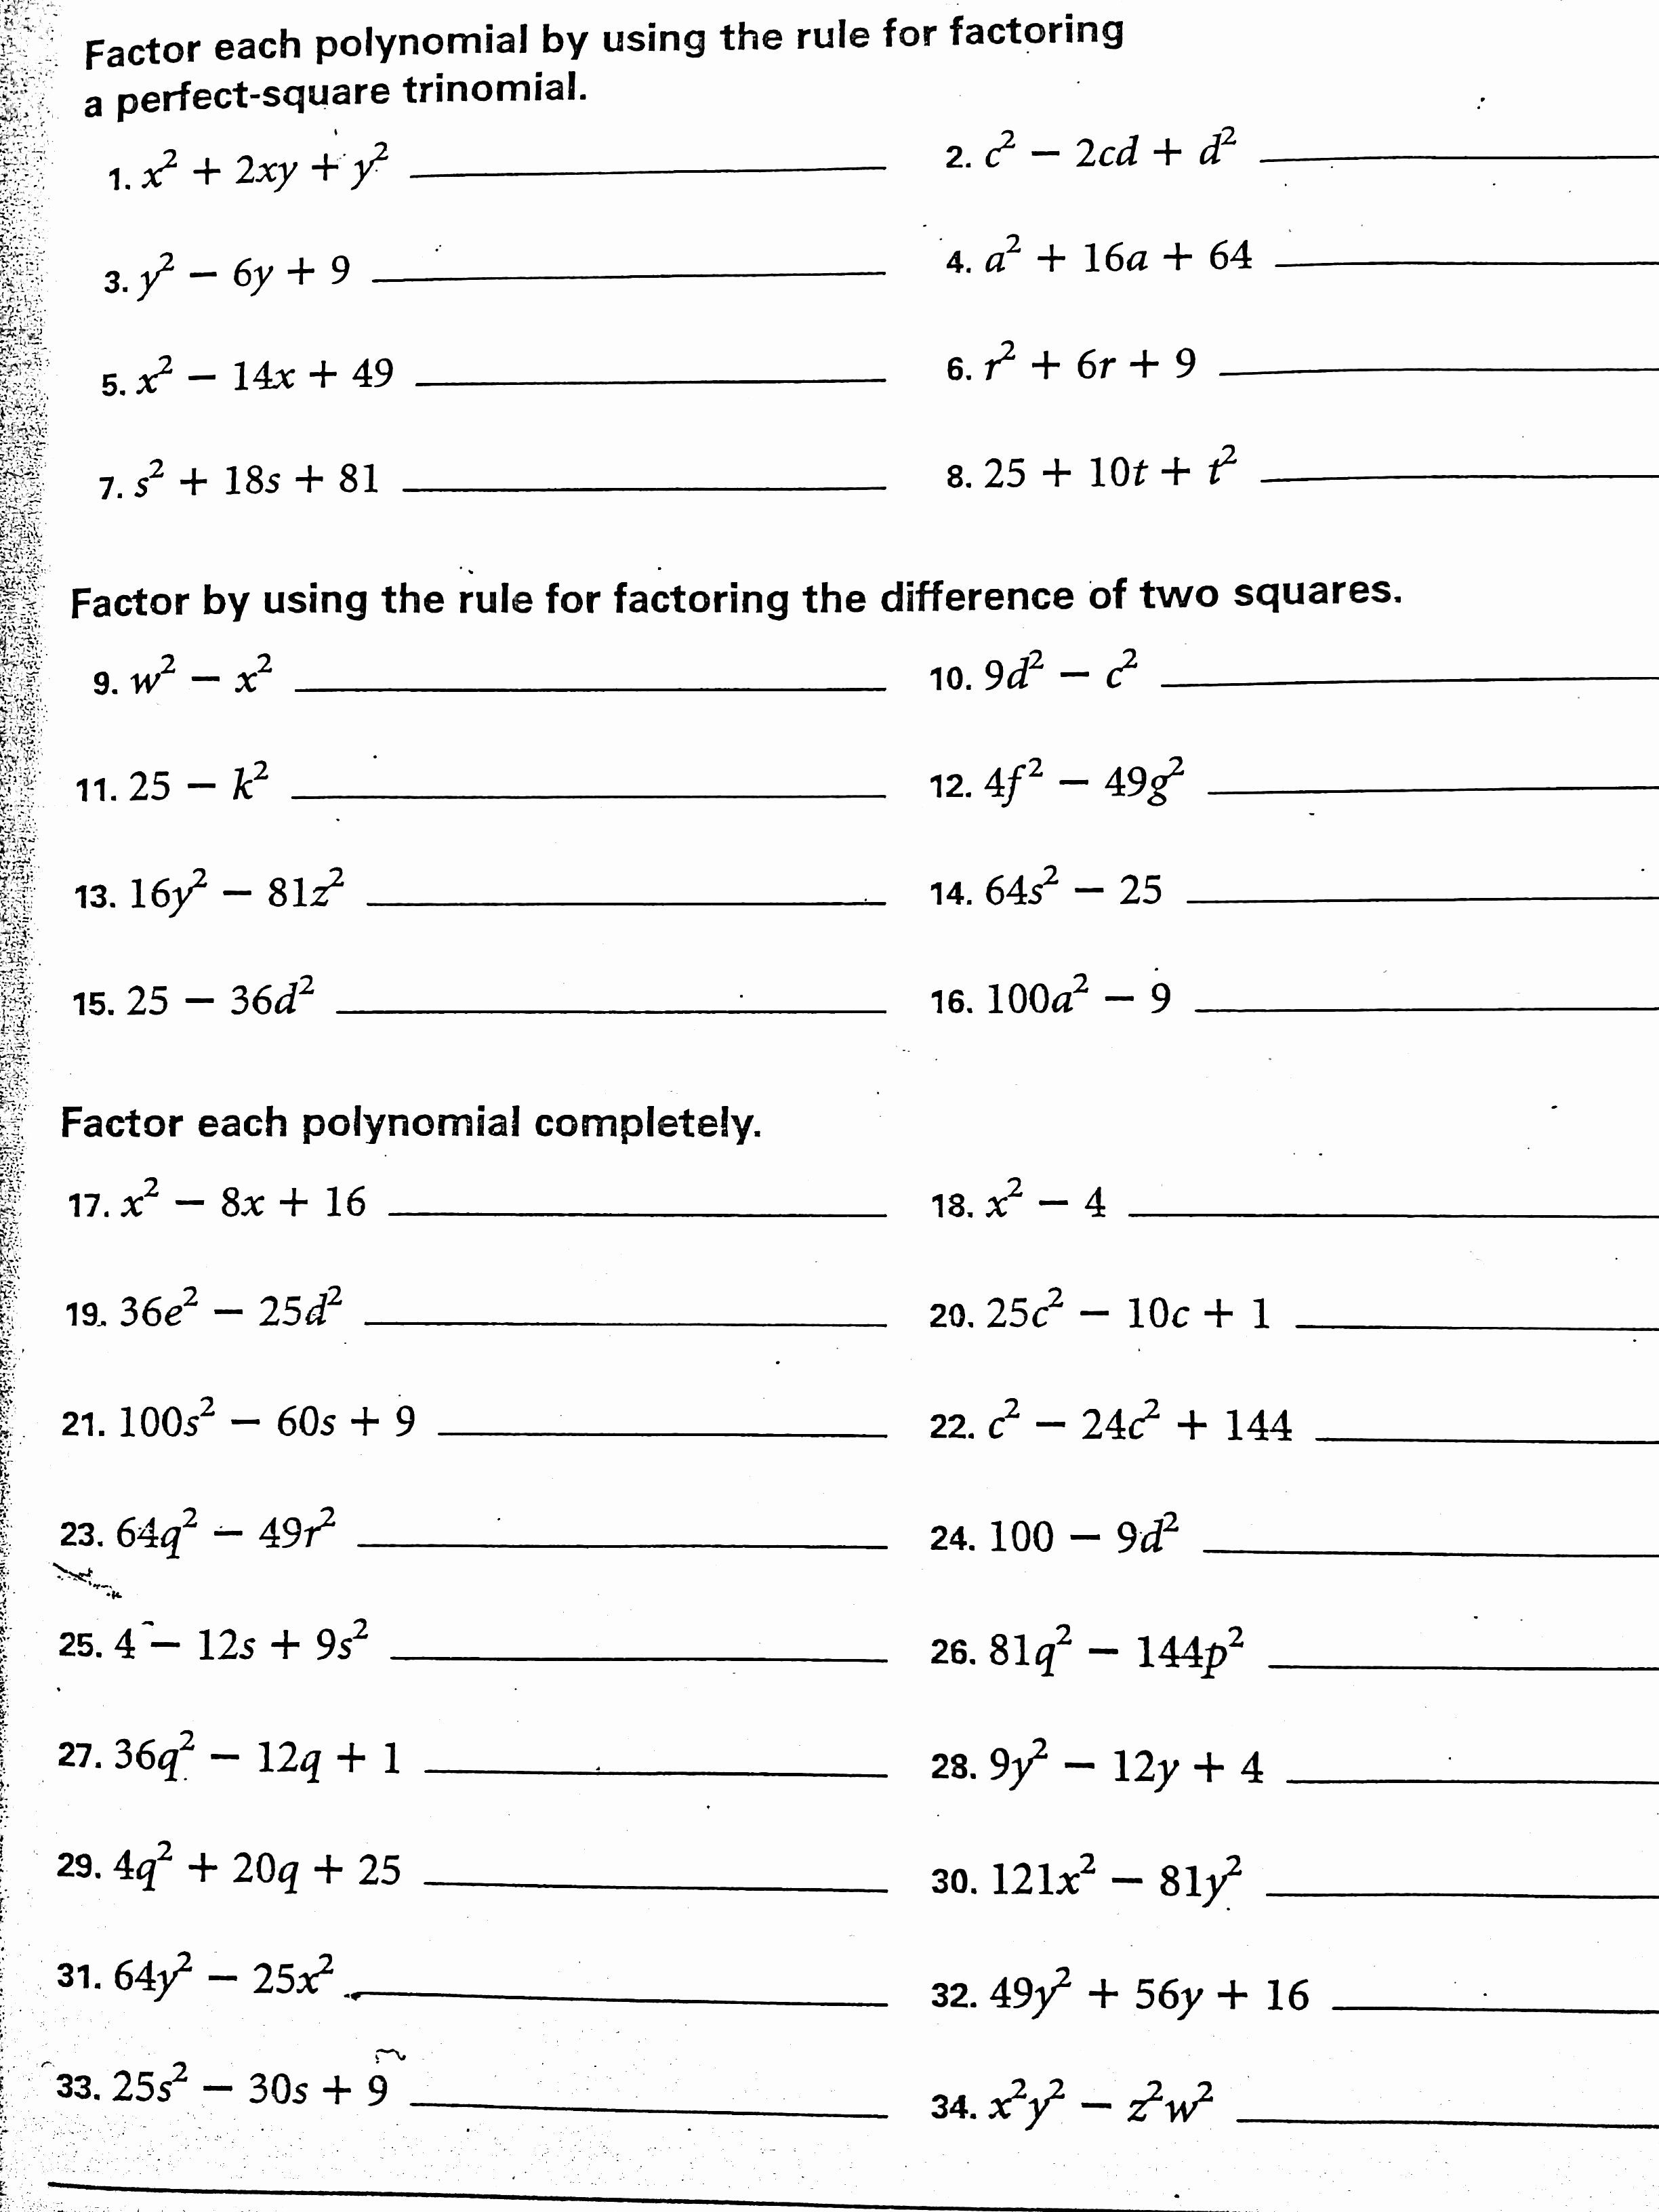 Factoring Difference Of Squares Worksheet New Algebra 1